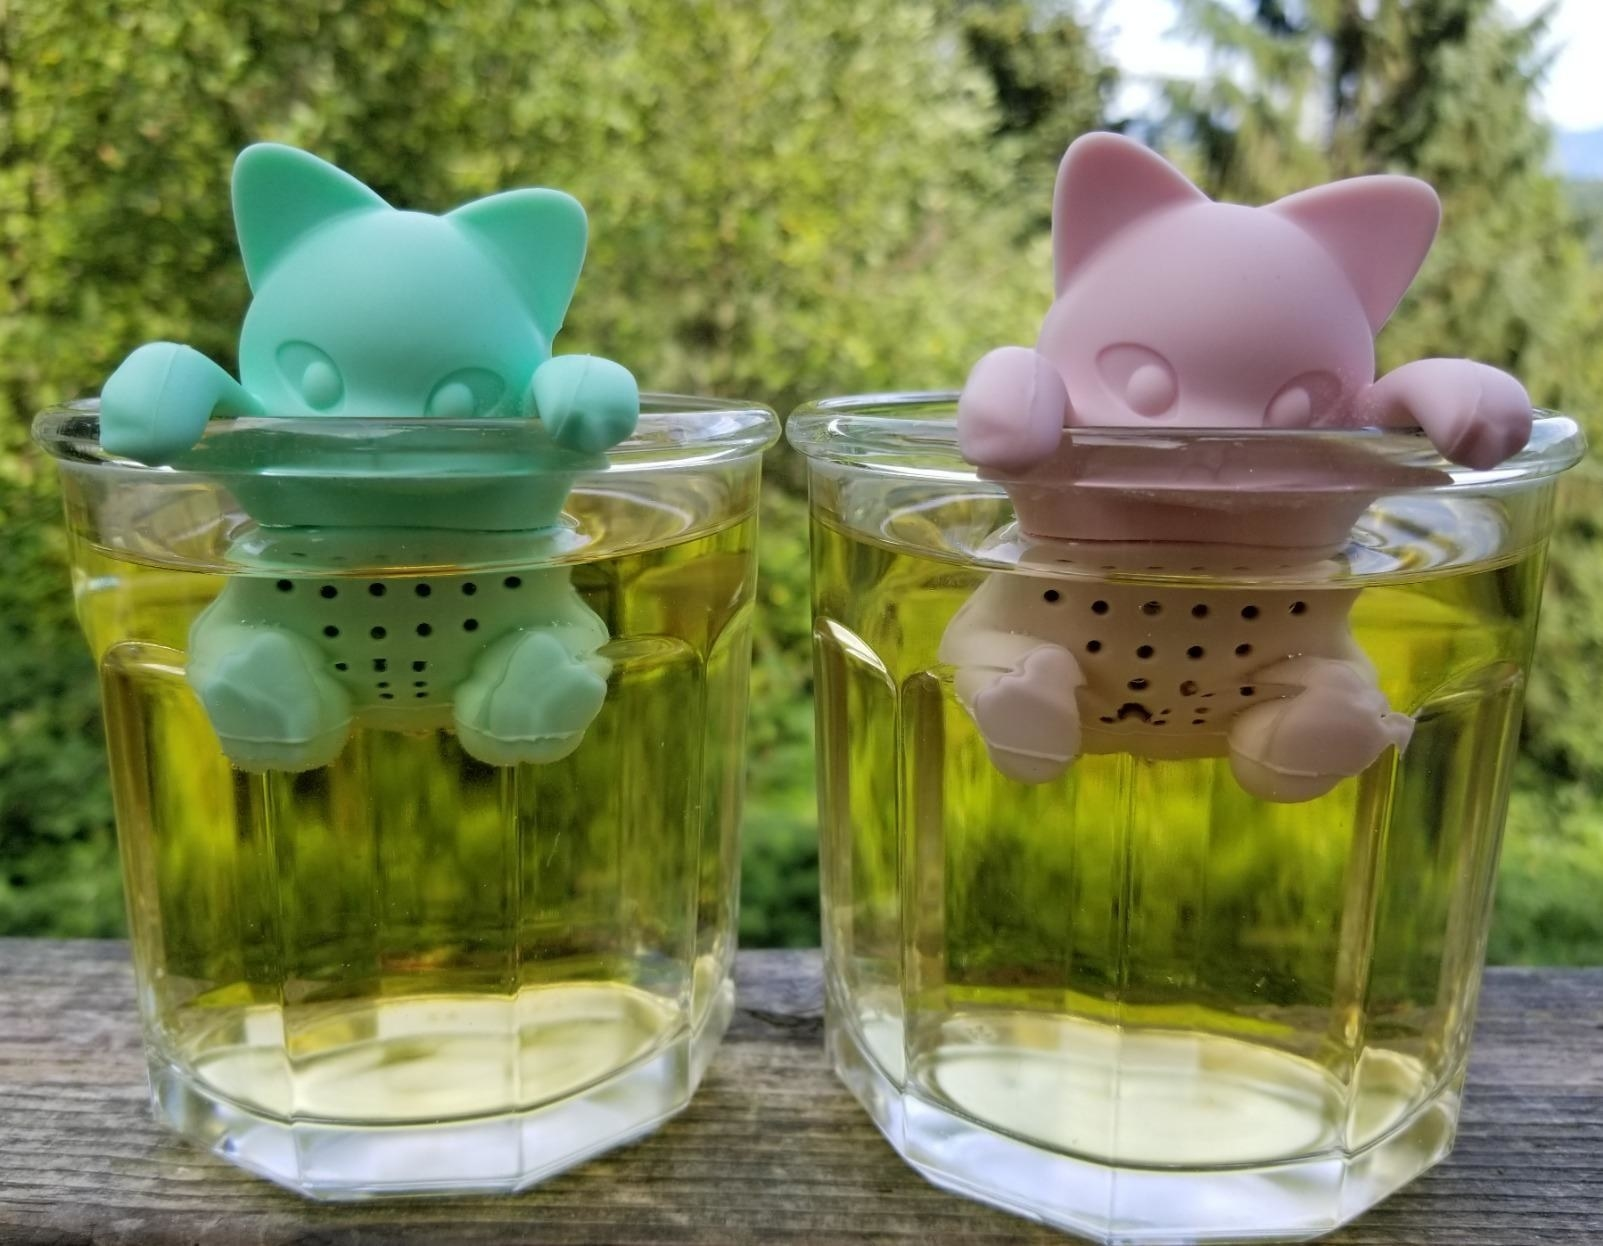 Reviewer pic of teal and pink tea infusers that look like kittens hanging off the inside edge of mugs with yellow tea inside.